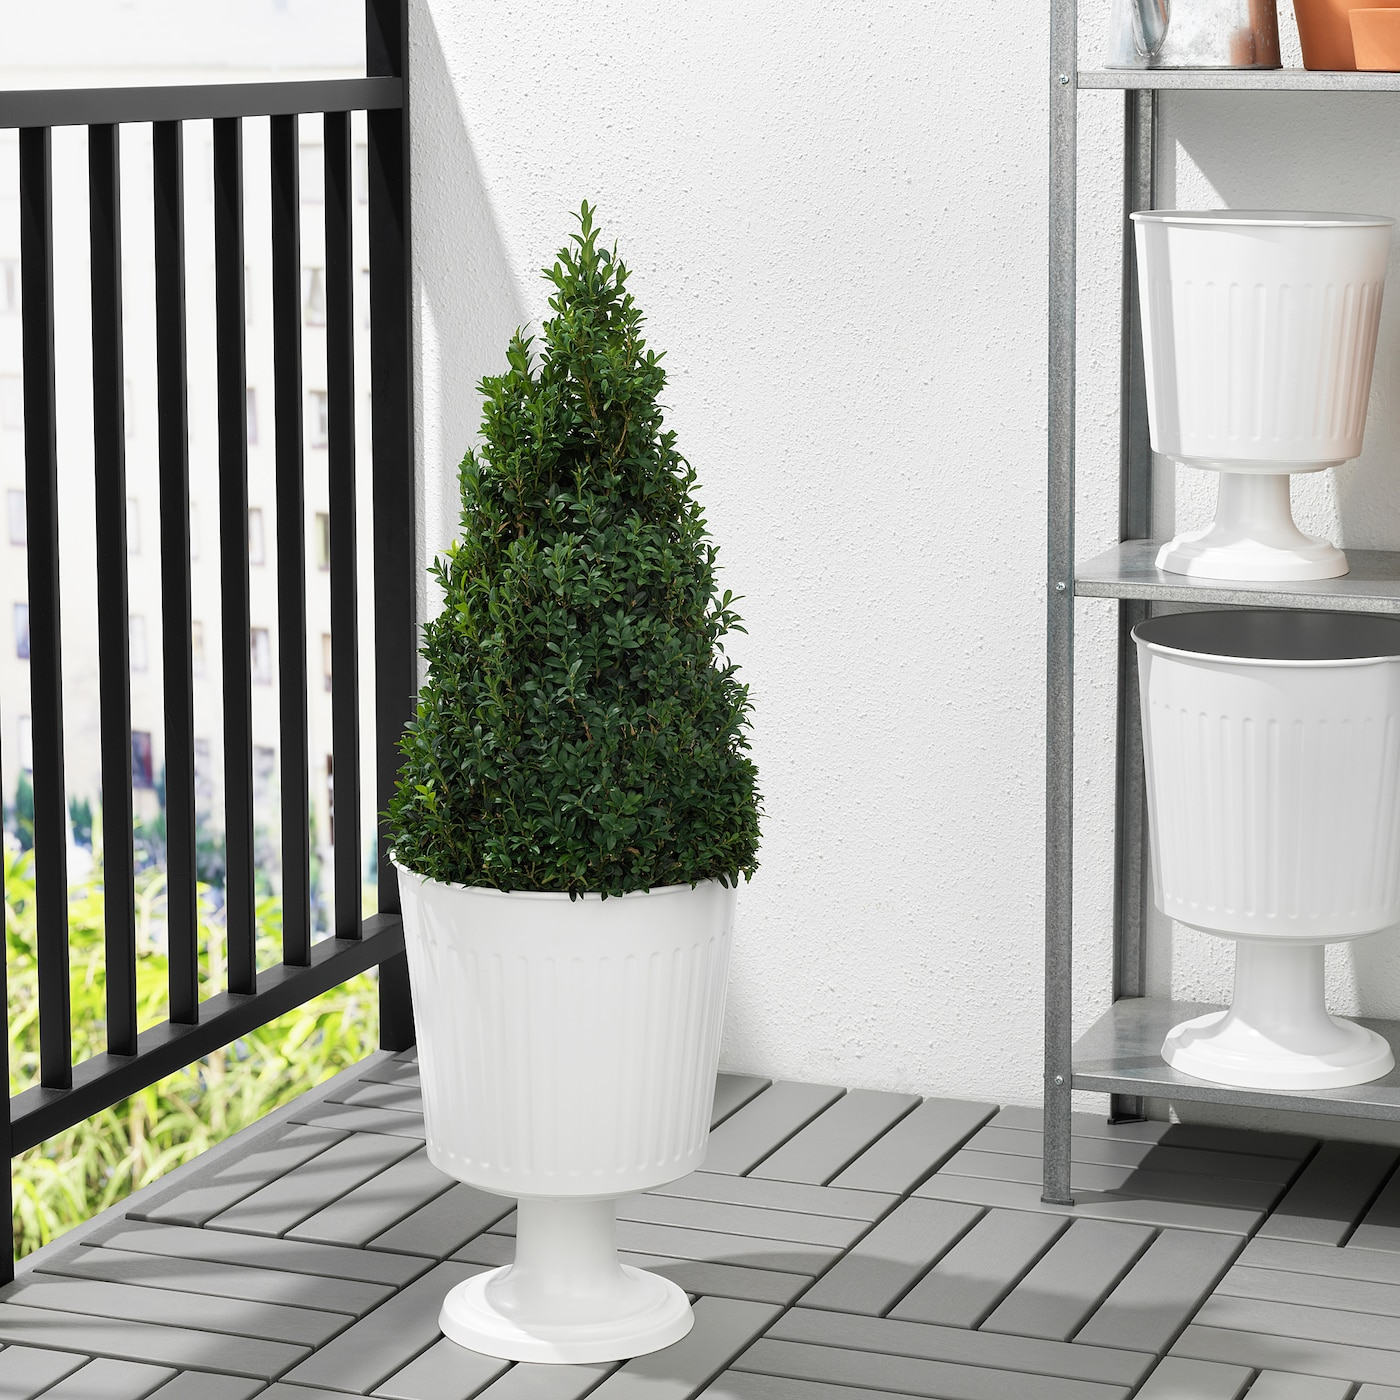 Citronmeliss Plant Urn In Outdoor